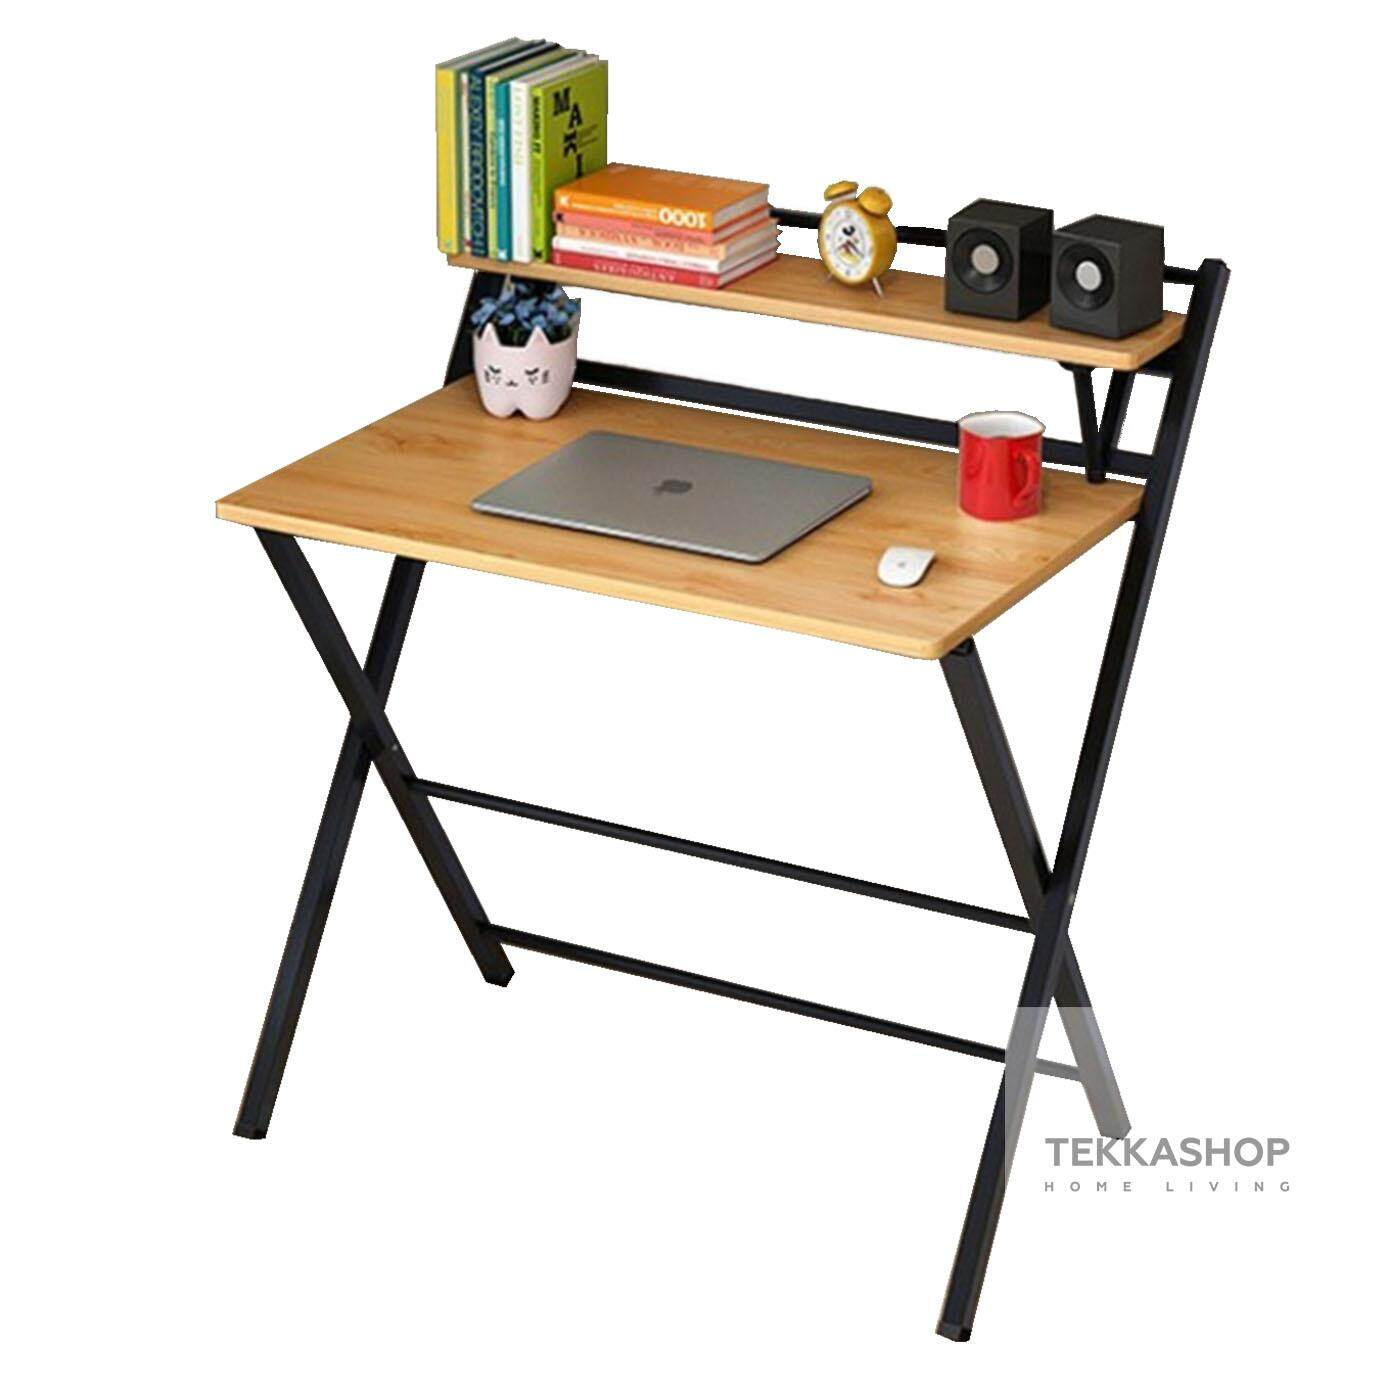 Tekkashop GDOT1608BR Foldable Wooden Study Desk Laptop Simple Table - Brown  Brown